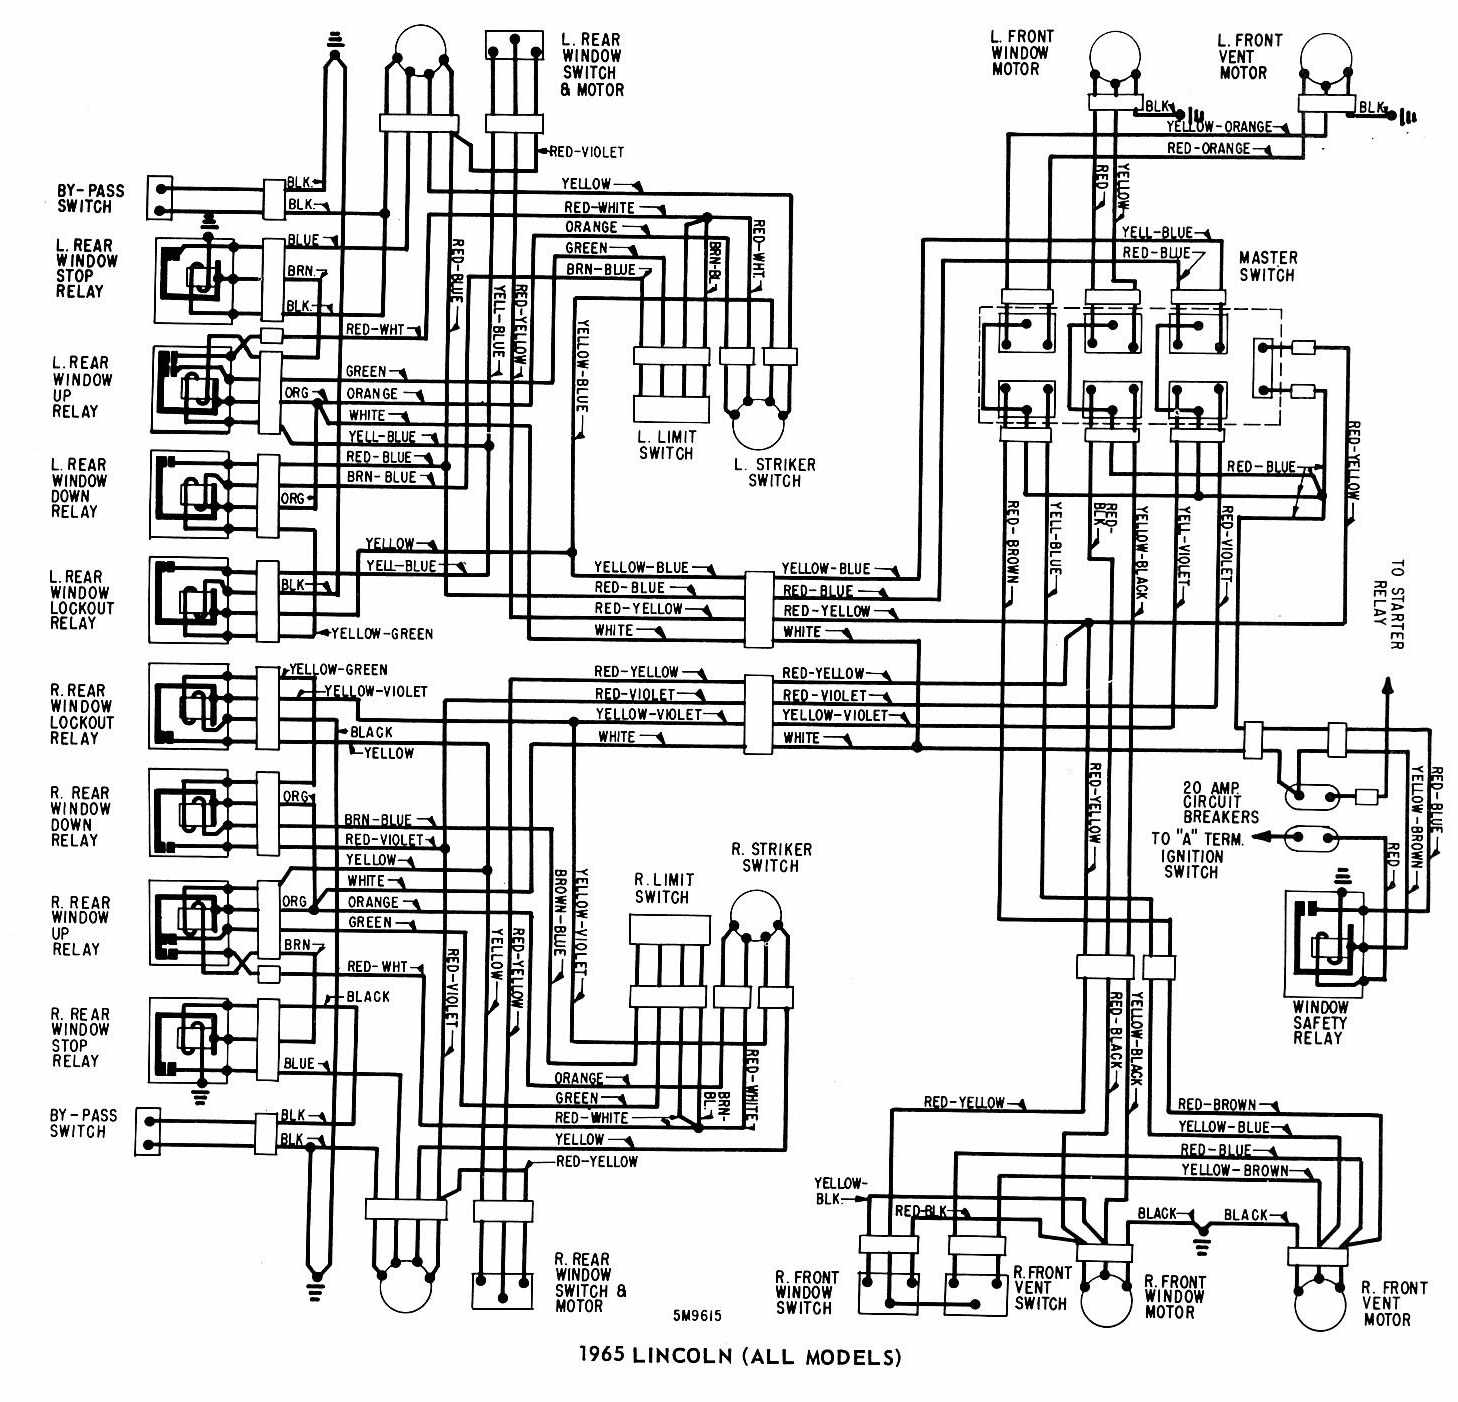 1965 lincoln continental wiring diagram simple wiring diagram schema1965 lincoln continental wiring diagram wiring diagram third level 1973 lincoln continental wiring diagram 1965 lincoln continental wiring diagram